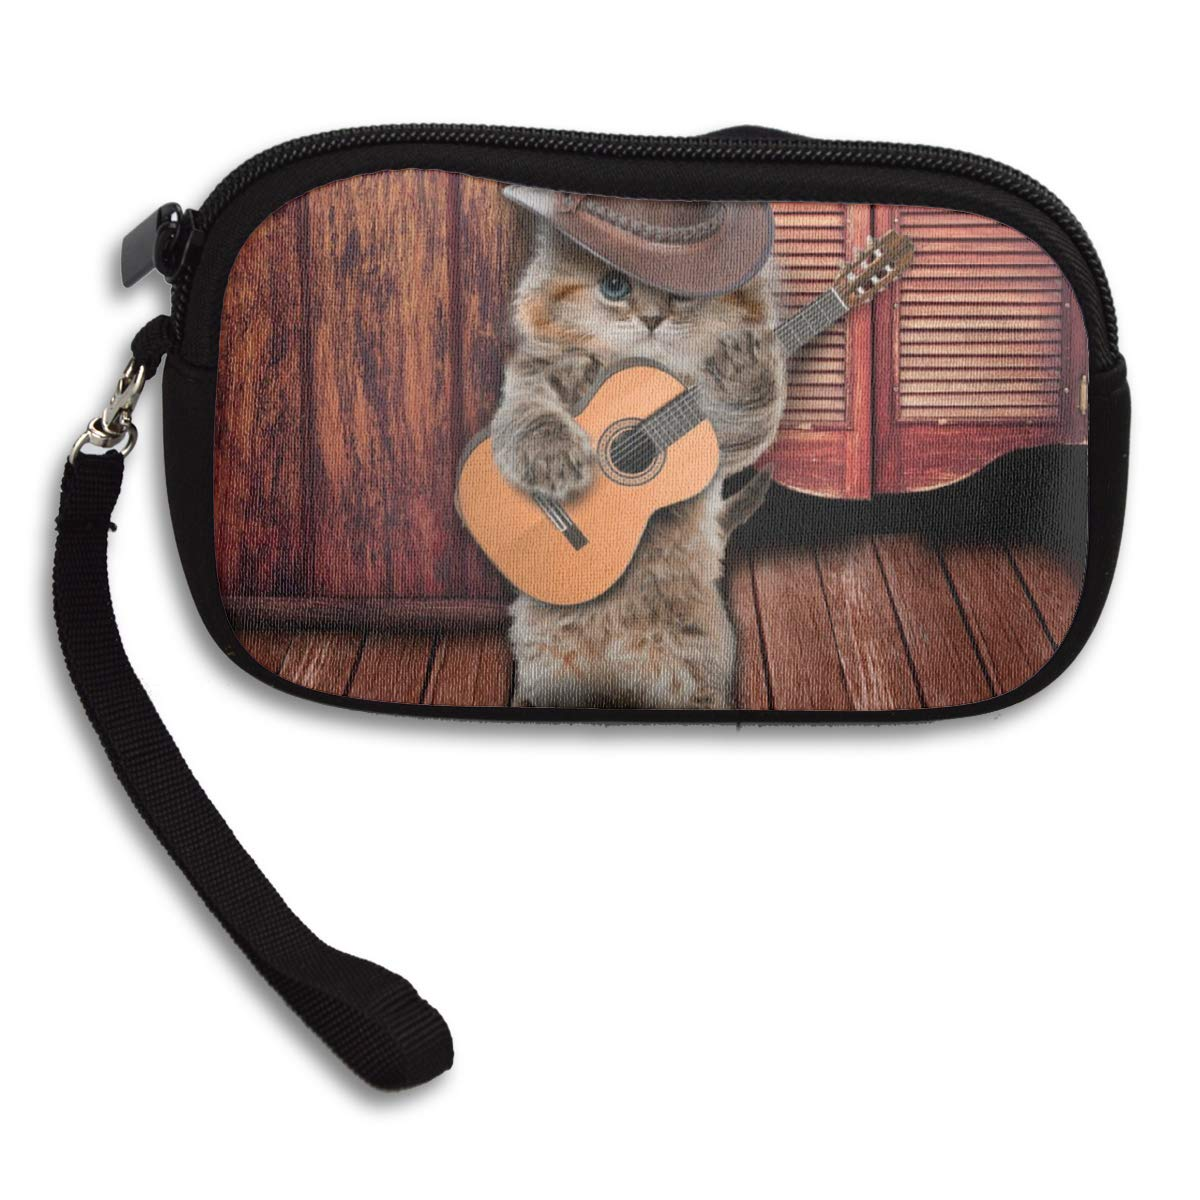 Country Funny Guitarist Cat Play Guitar Coin Pouch Clutch Purse Wristlet Wallet Phone Card Holder Handbag